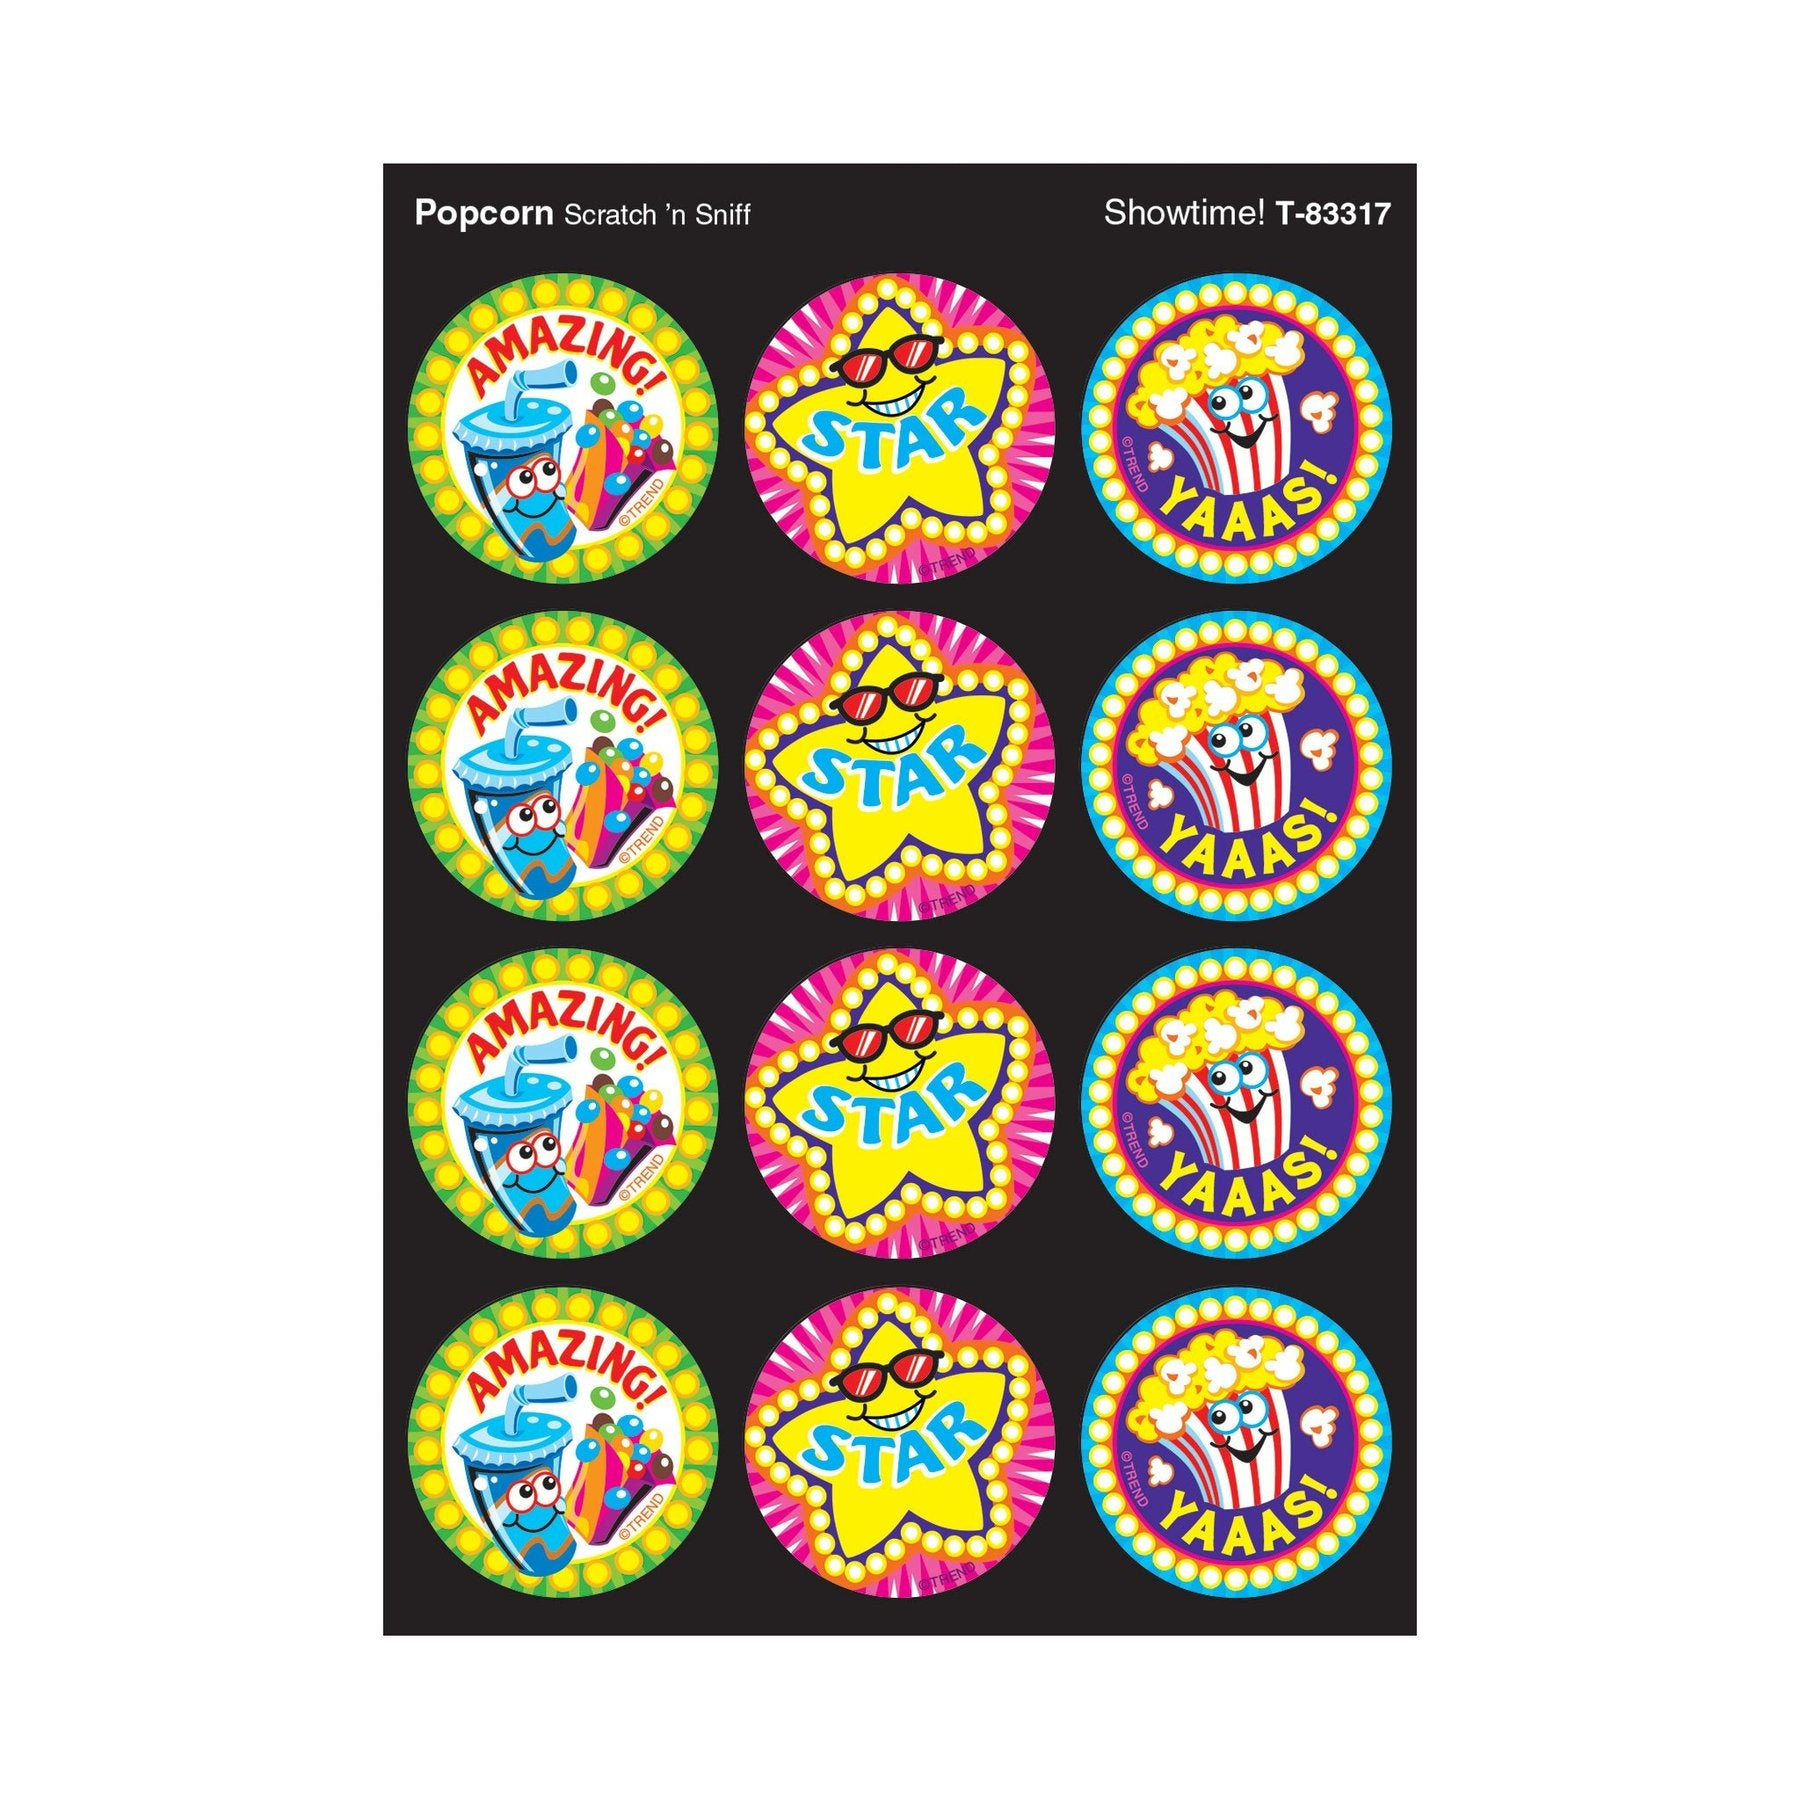 Showtime!, Popcorn scent Scratch 'n Sniff Stinky Stickers® – Large Round